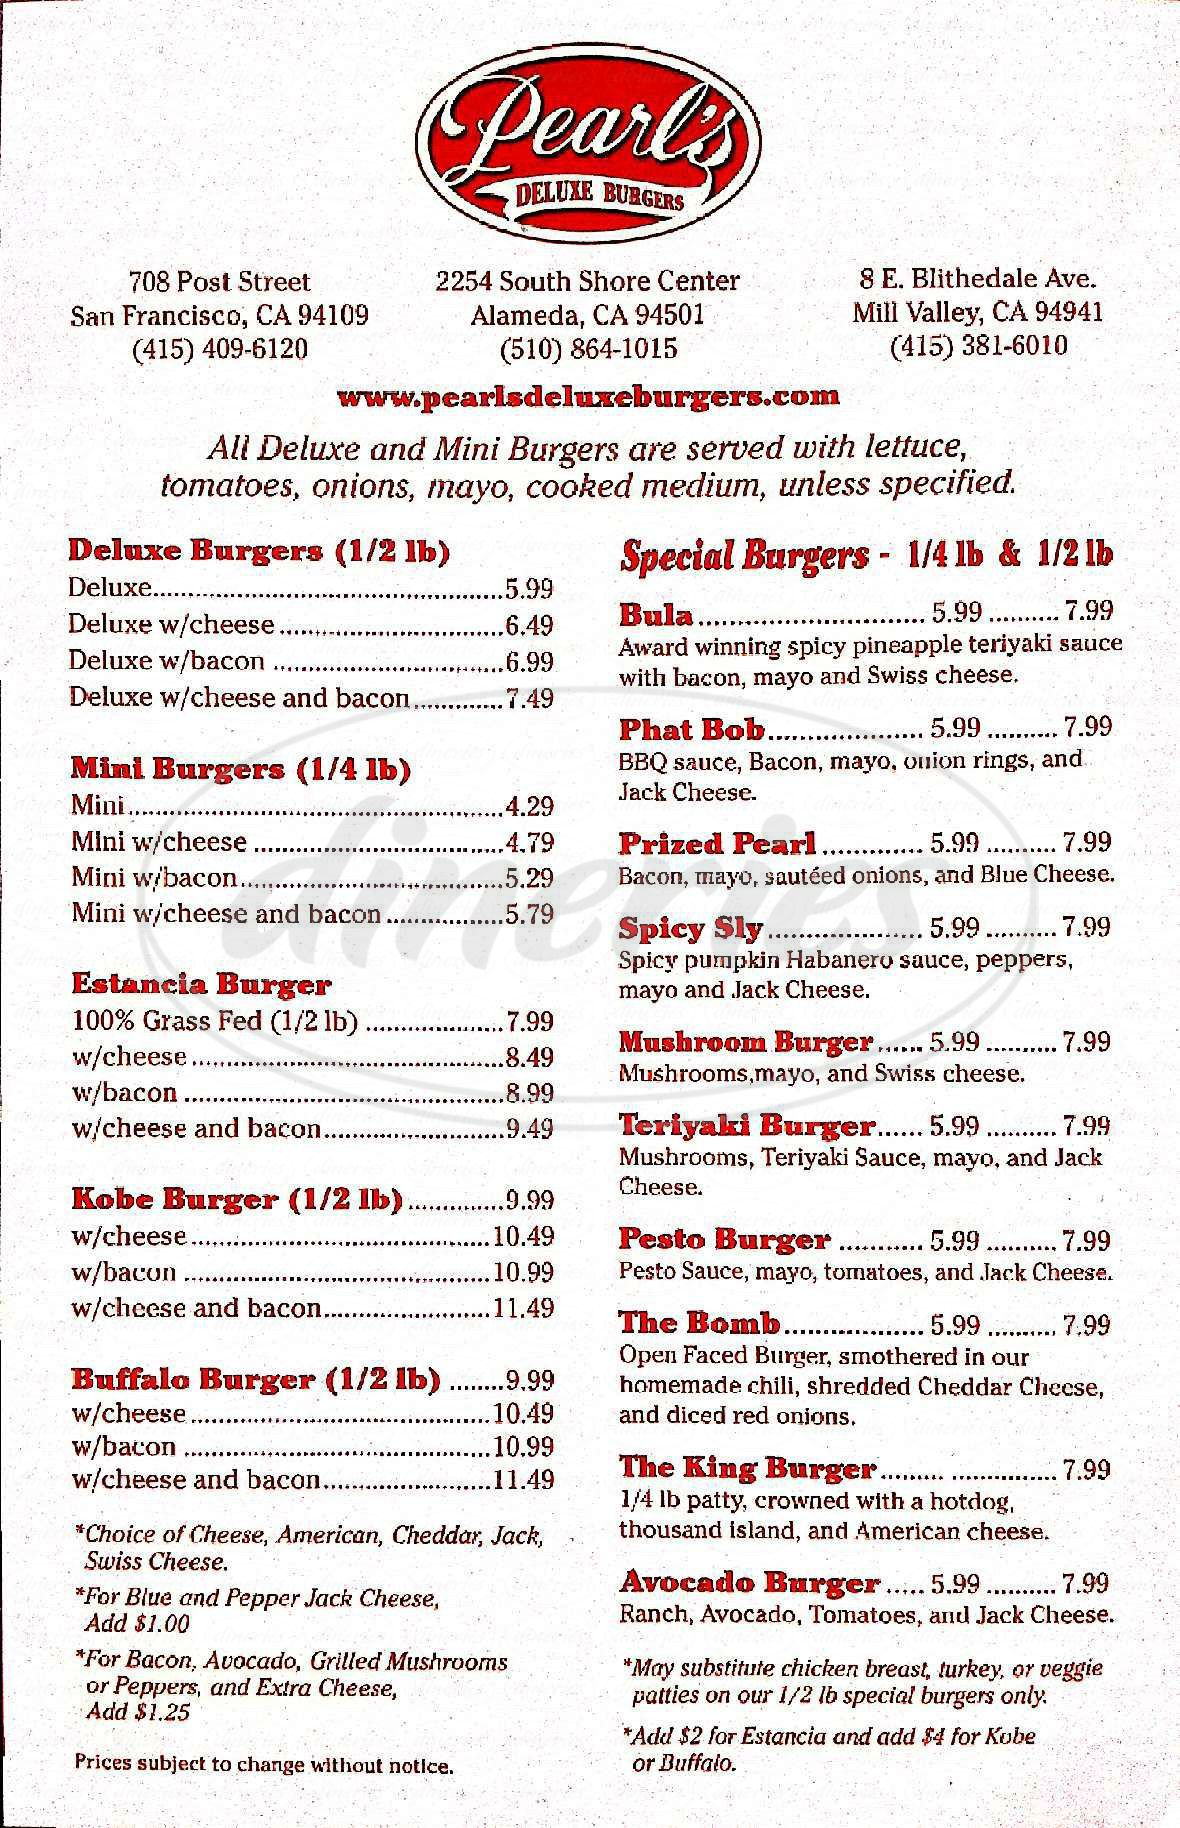 menu for Pearl's Deluxe Burgers